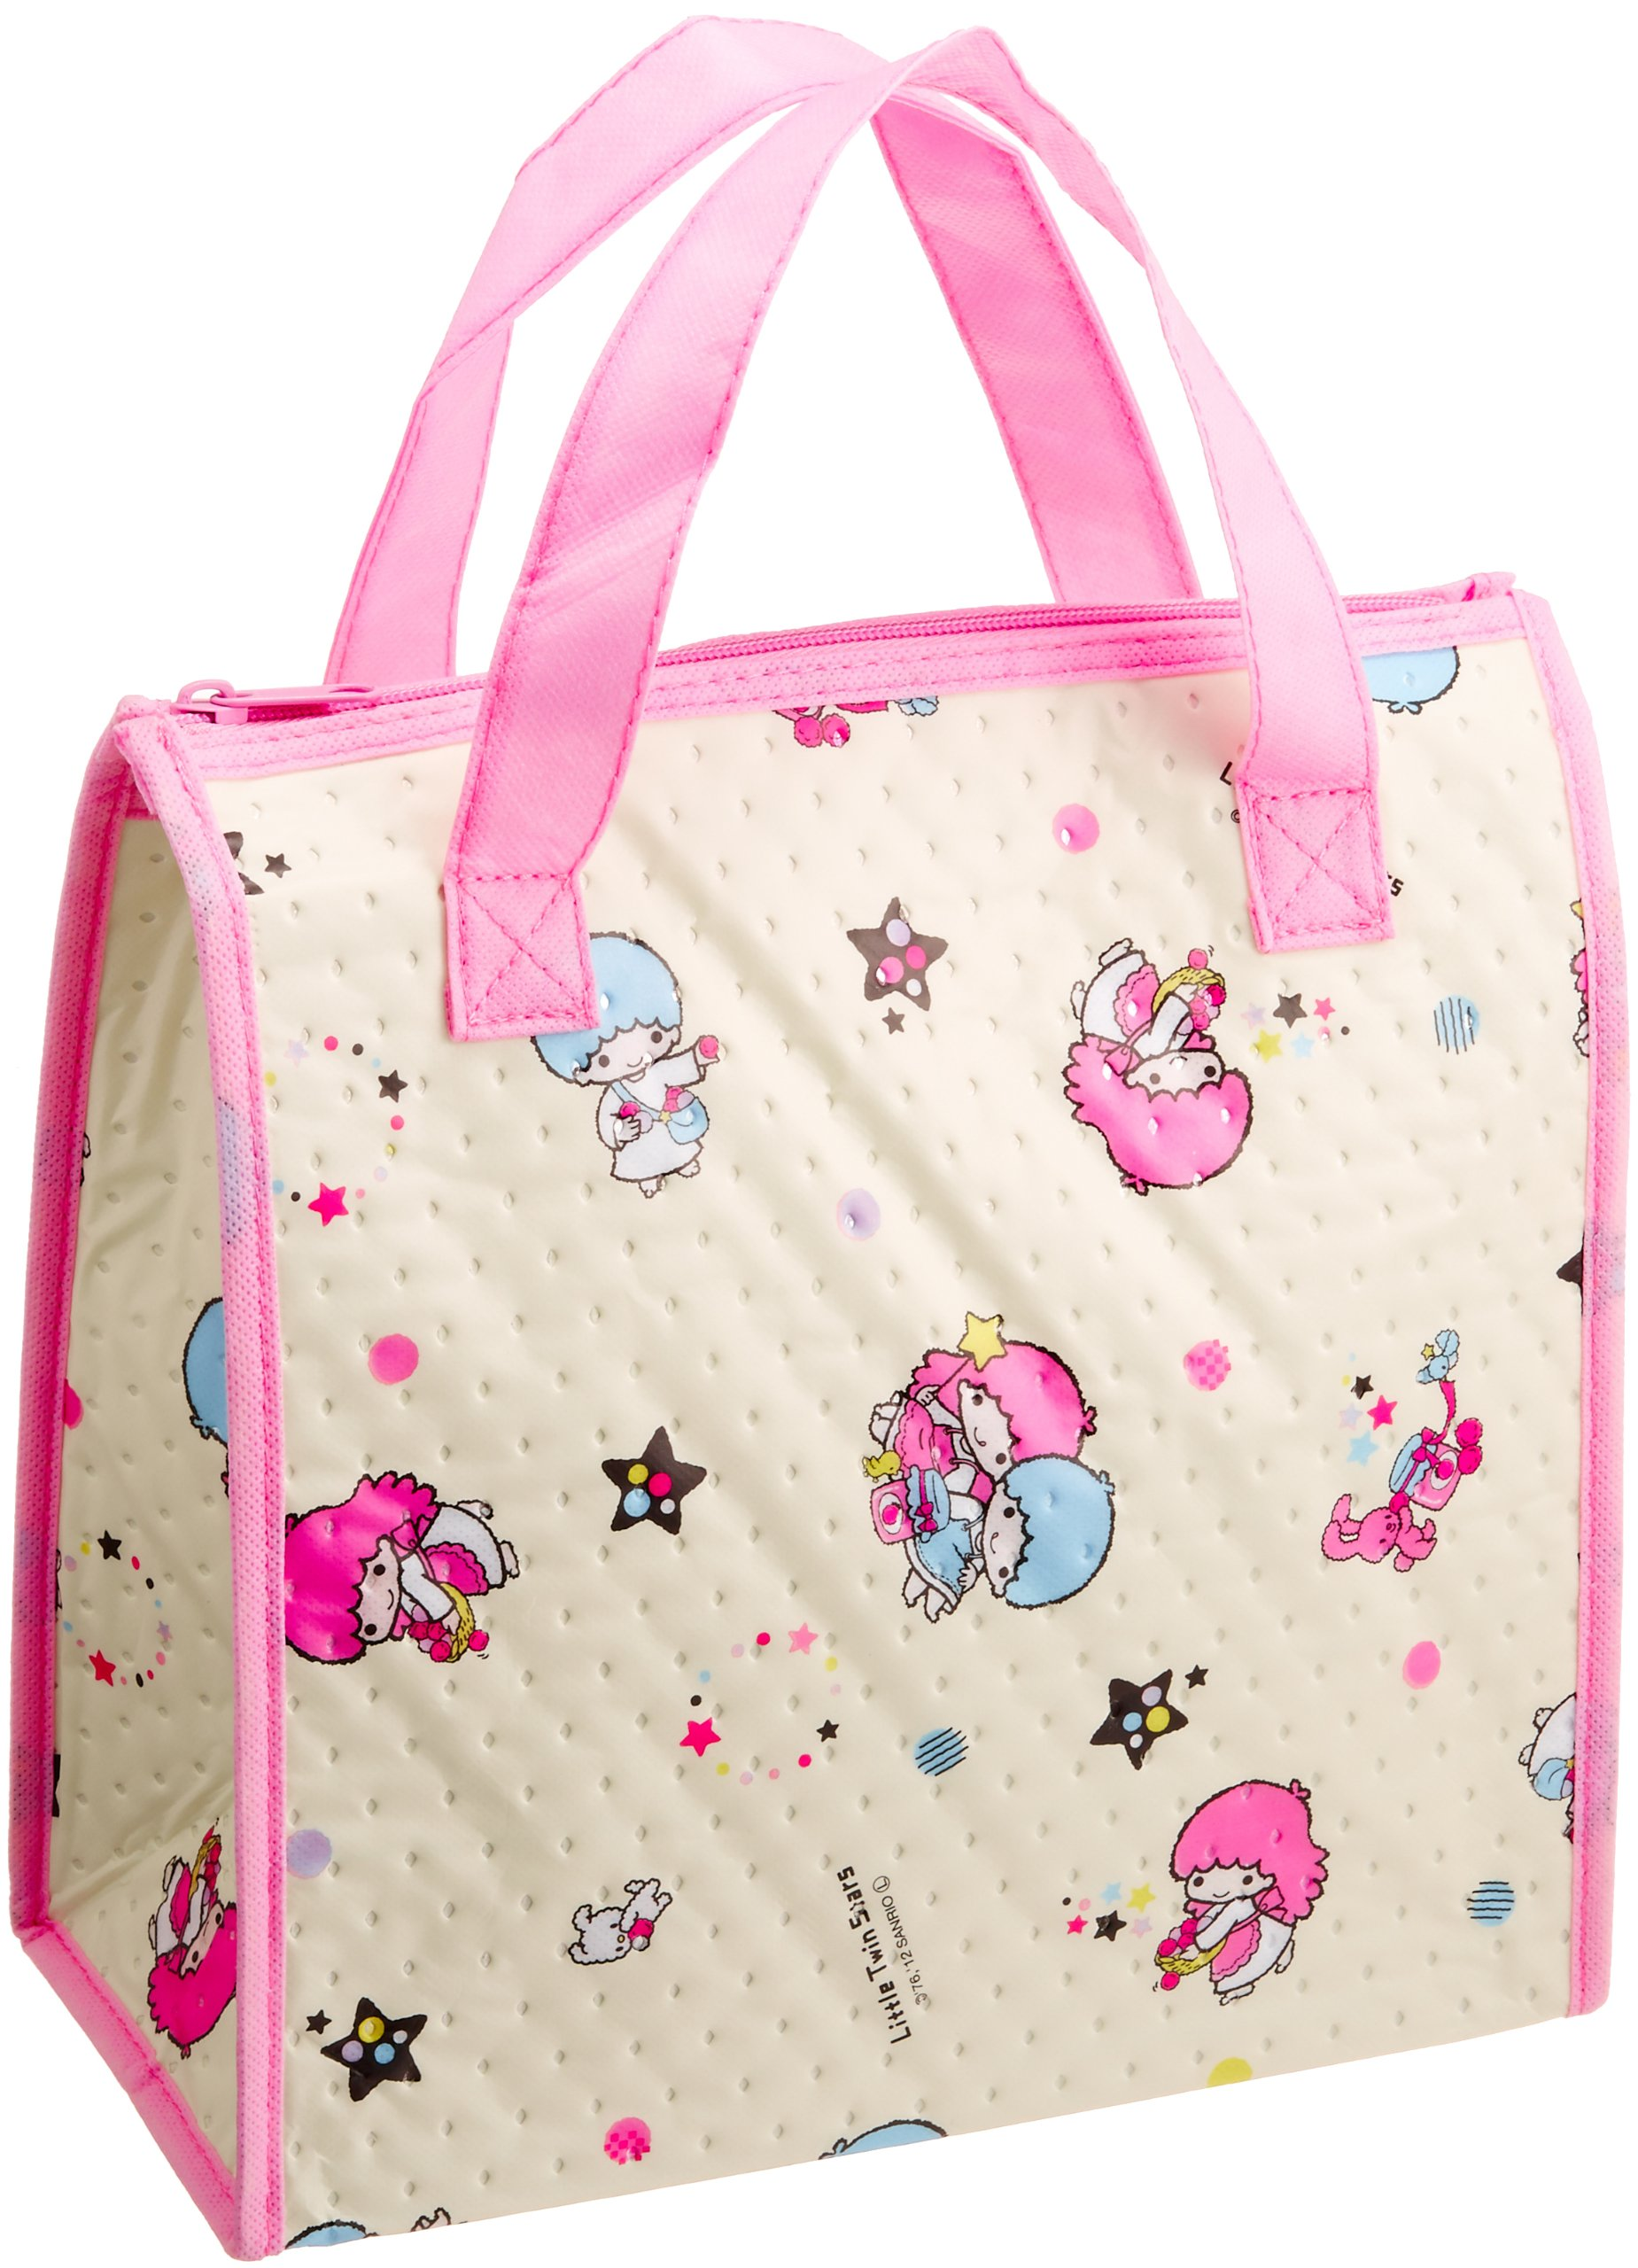 Little Twin Stars (Little Twin Stars) non-woven Cooler Bag FBC1 (japan import) by skater